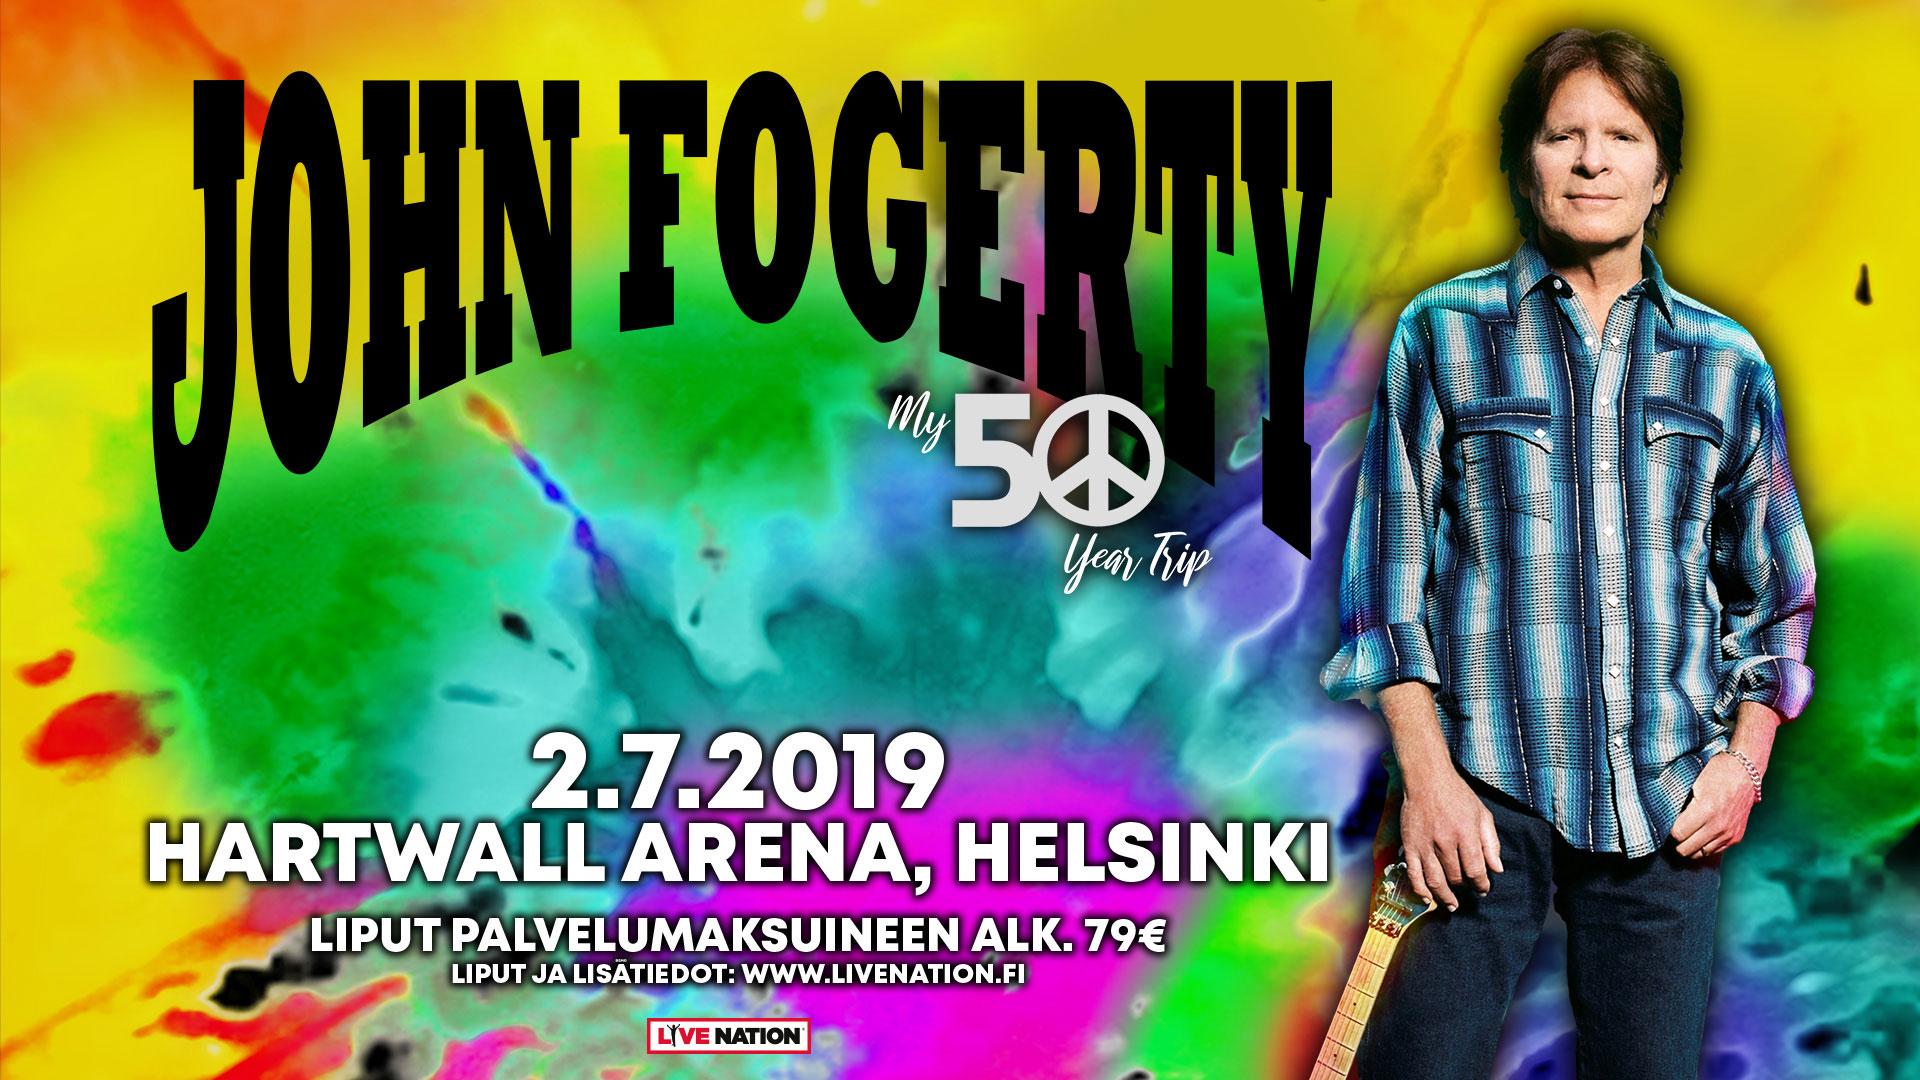 Link to event John Fogerty